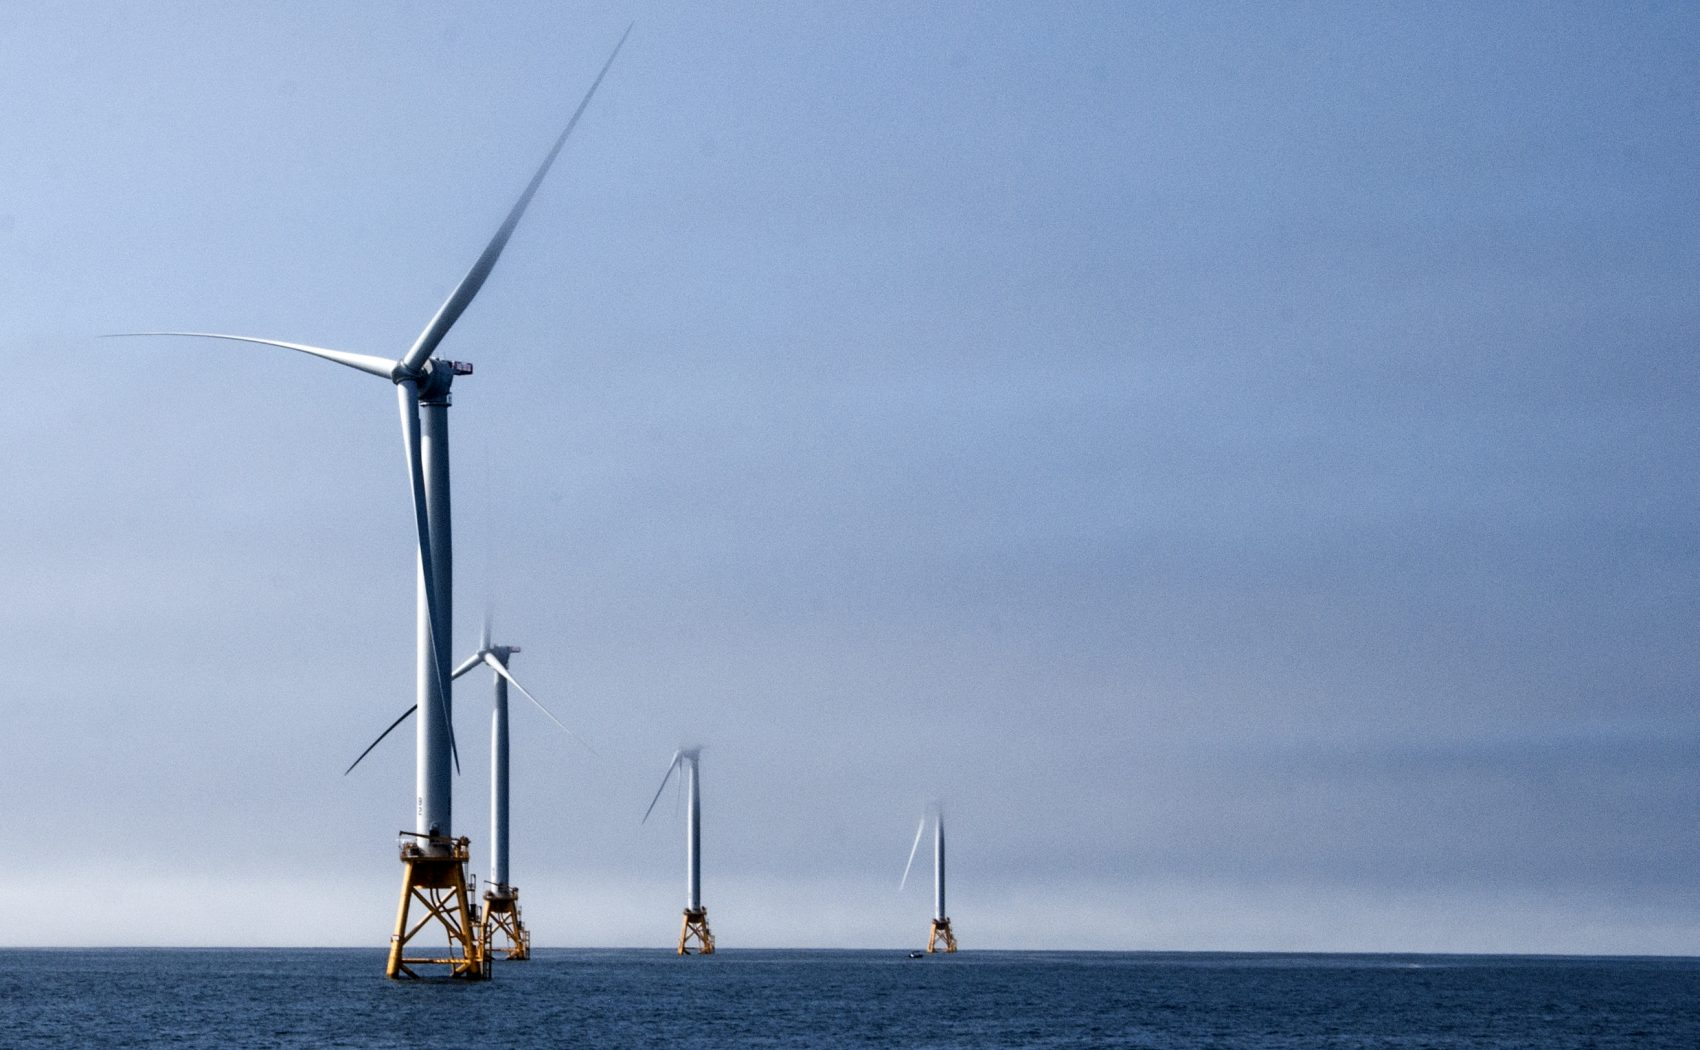 A wind farm off Block Island, off the coast of Rhode Island, in America (Chris Bentley for WBUR)